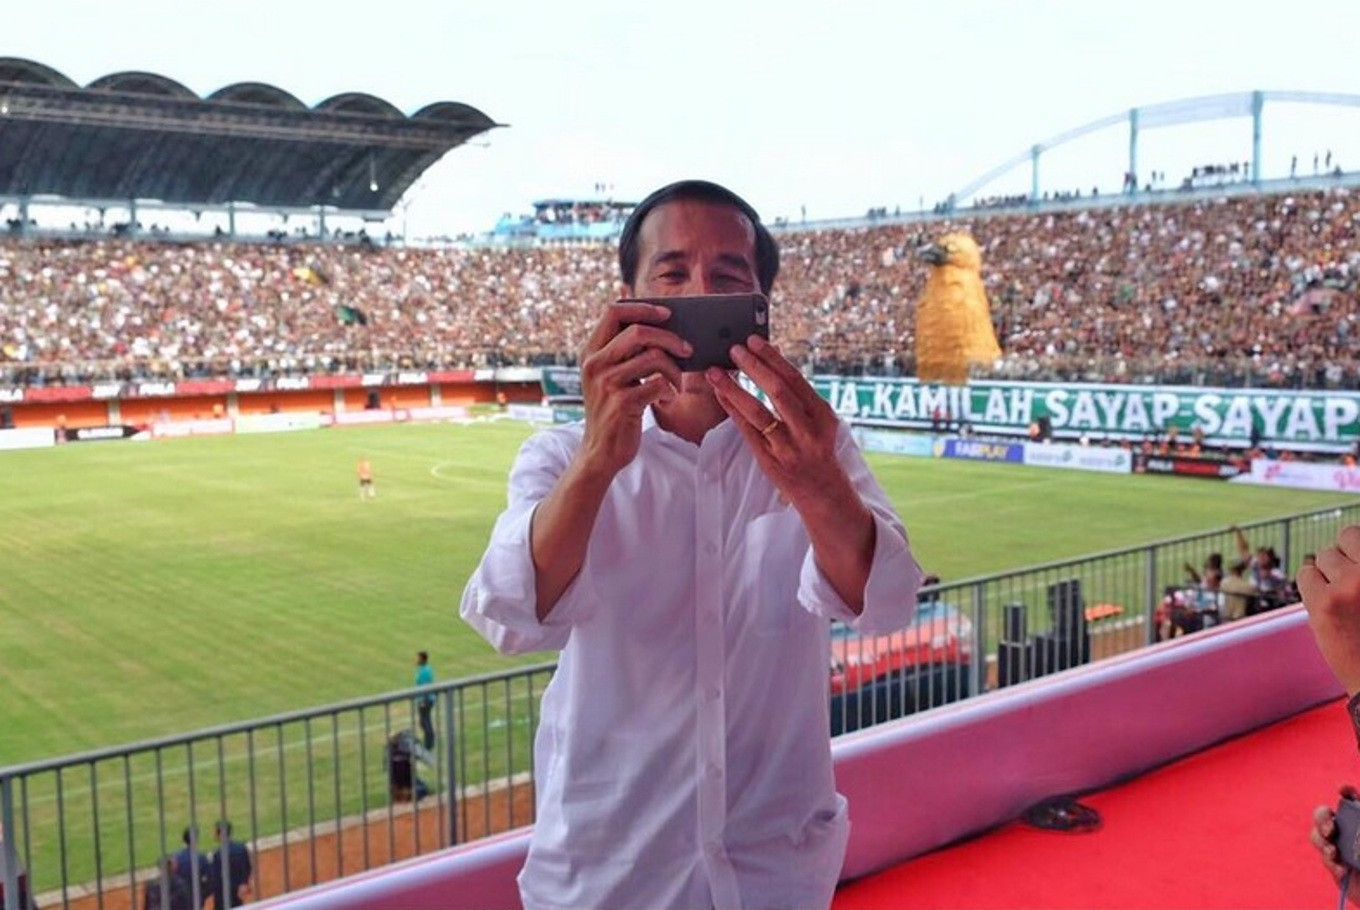 Jokowi listed as one of the most interactive world leaders on Instagram